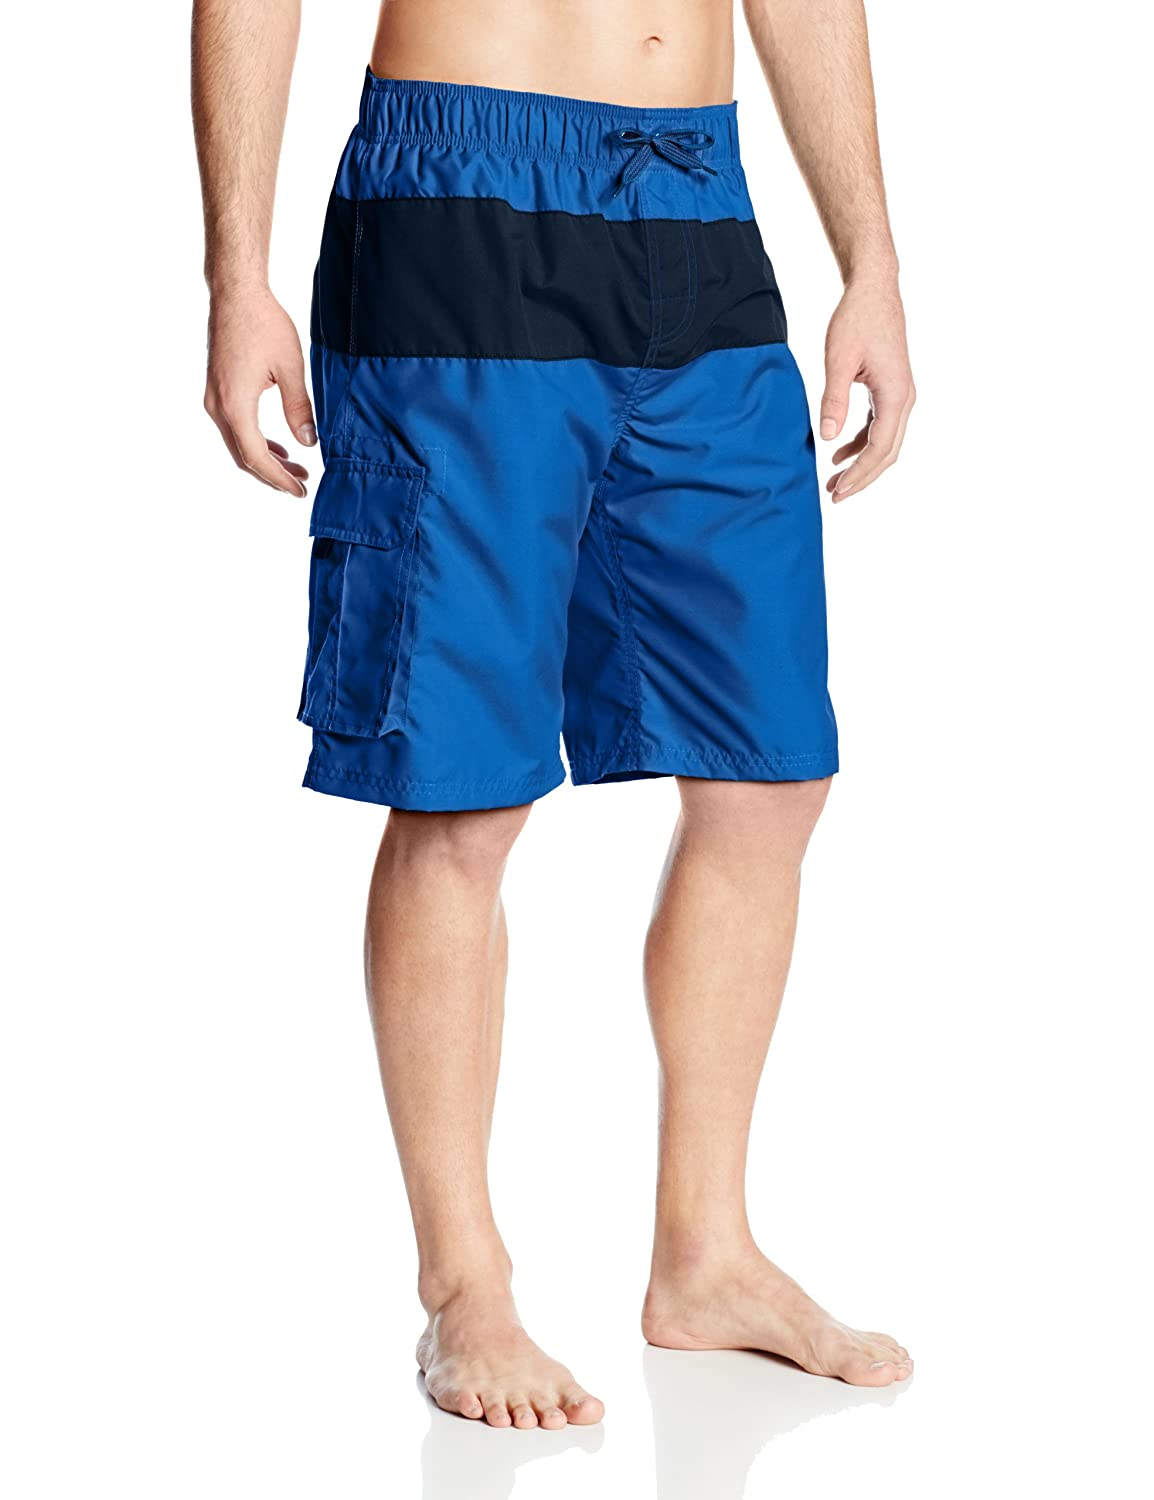 Kanu Surf Men's Legacy Swim Trunk Kanu Surf Men's Swimwear 1468